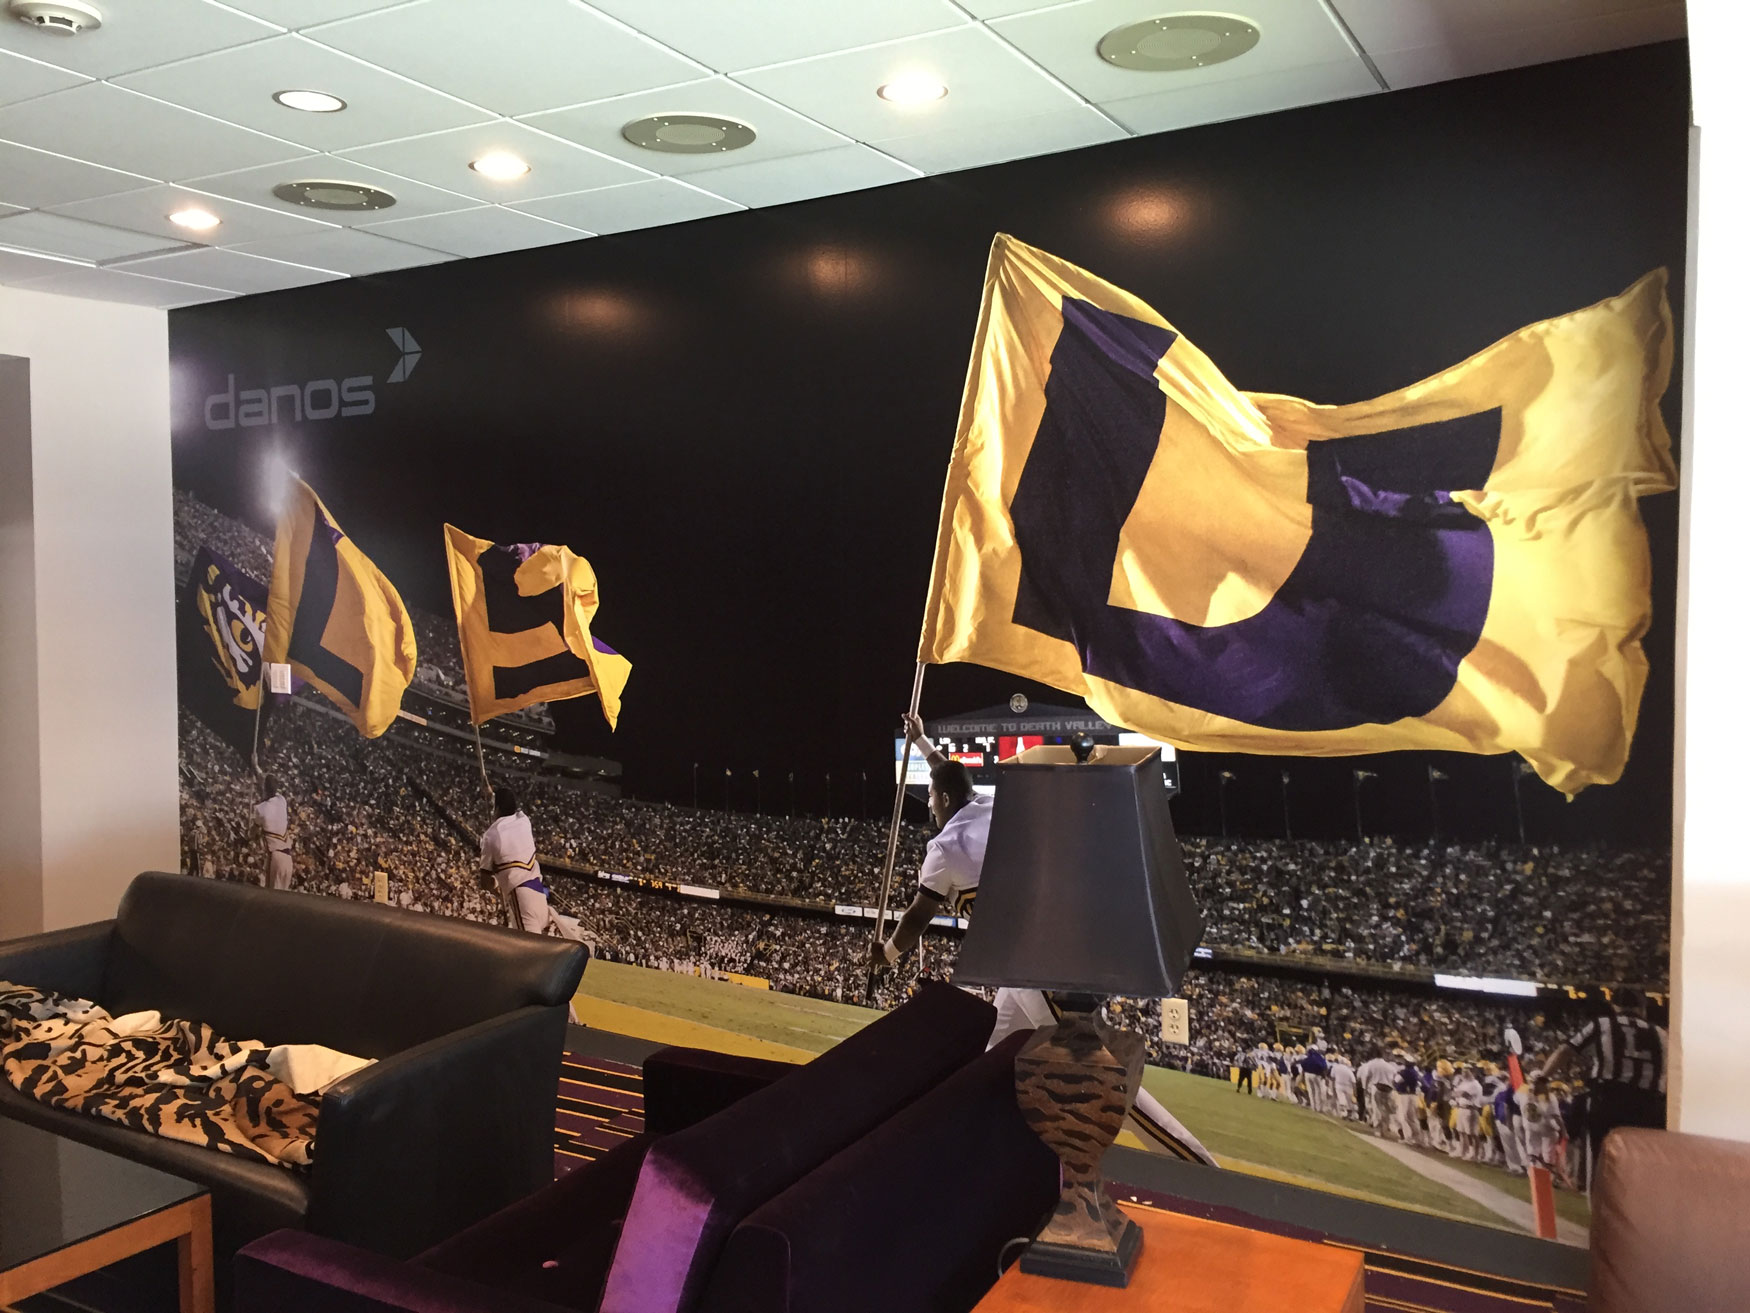 Danos Wall Mural LSU Suite Tiger Stadium Baton Rouge